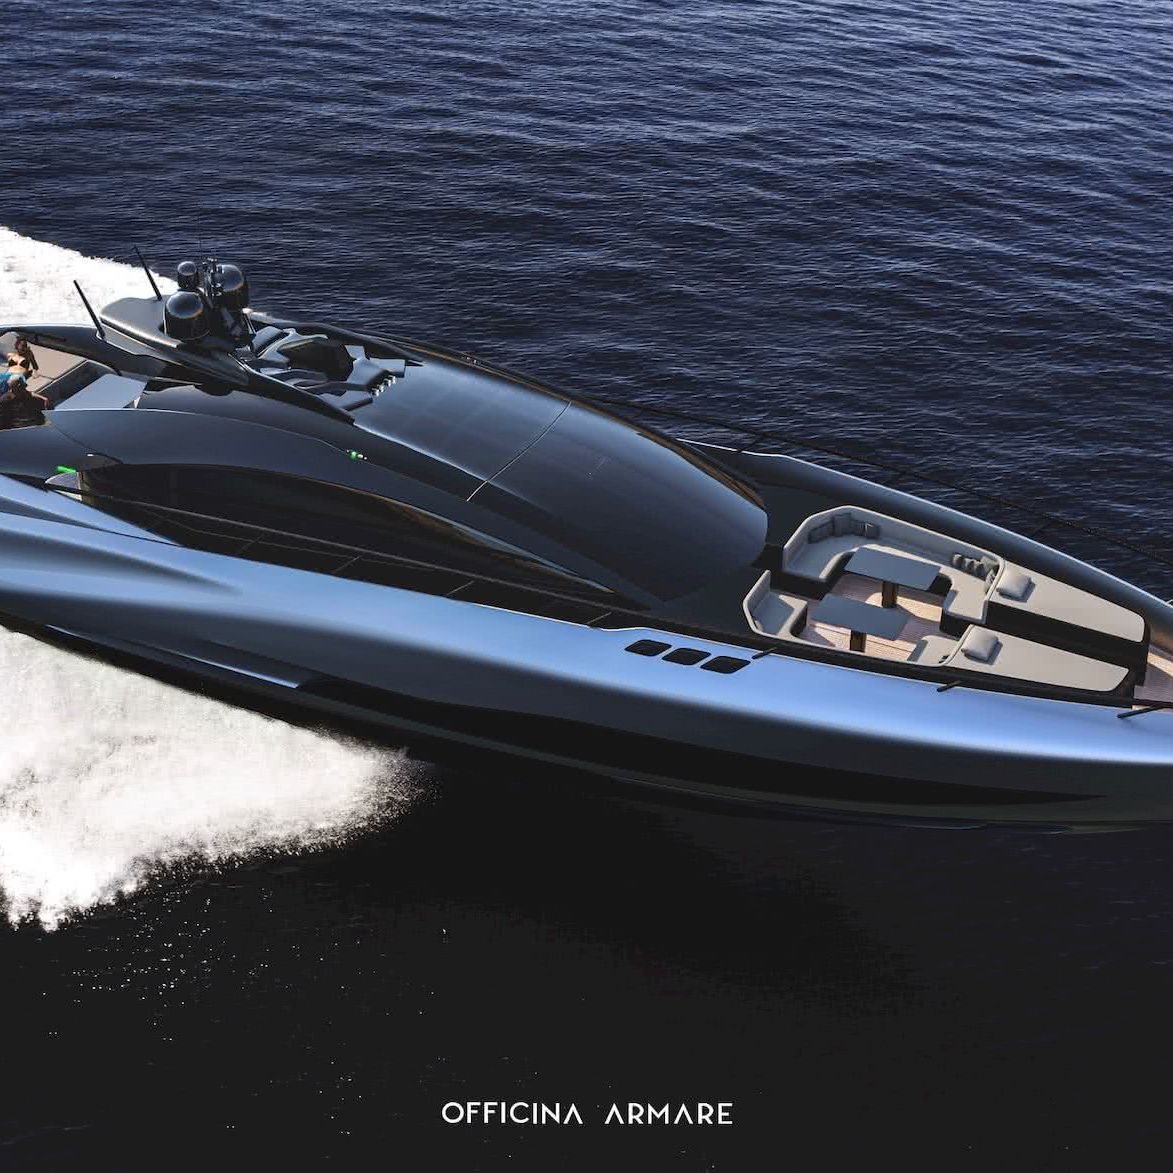 A88 Yacht Officina Armare